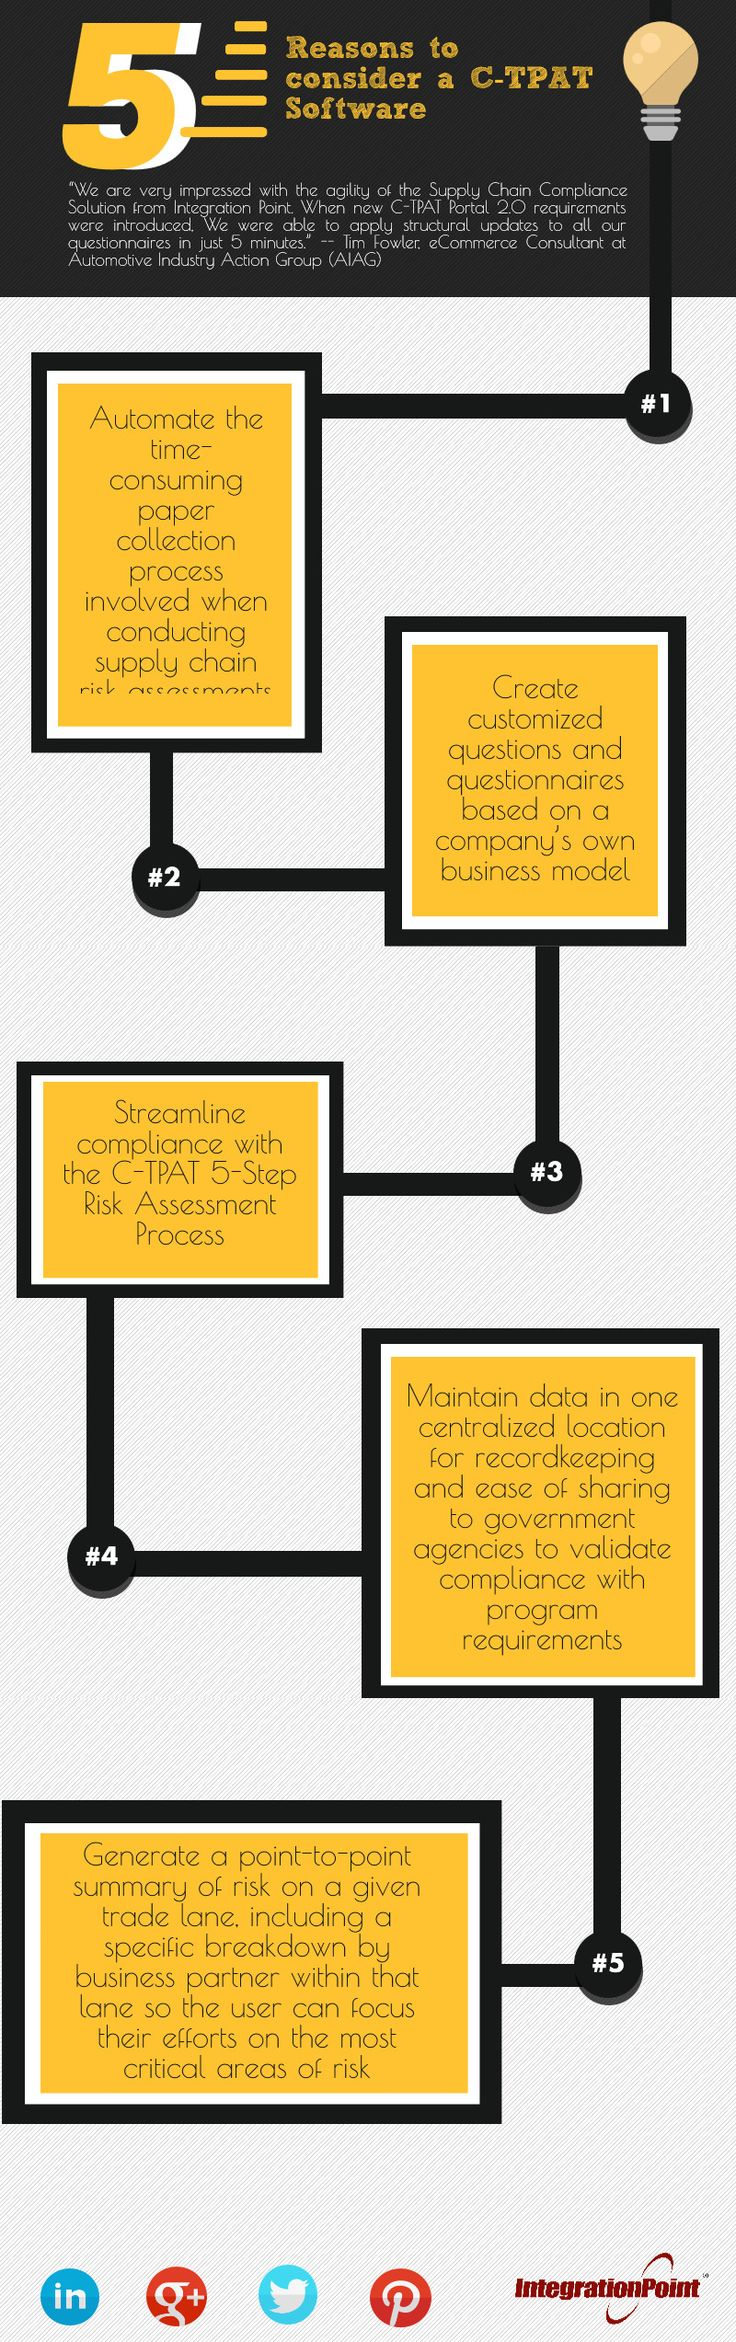 Reasons to consider a CTPAT-Software | Infographic